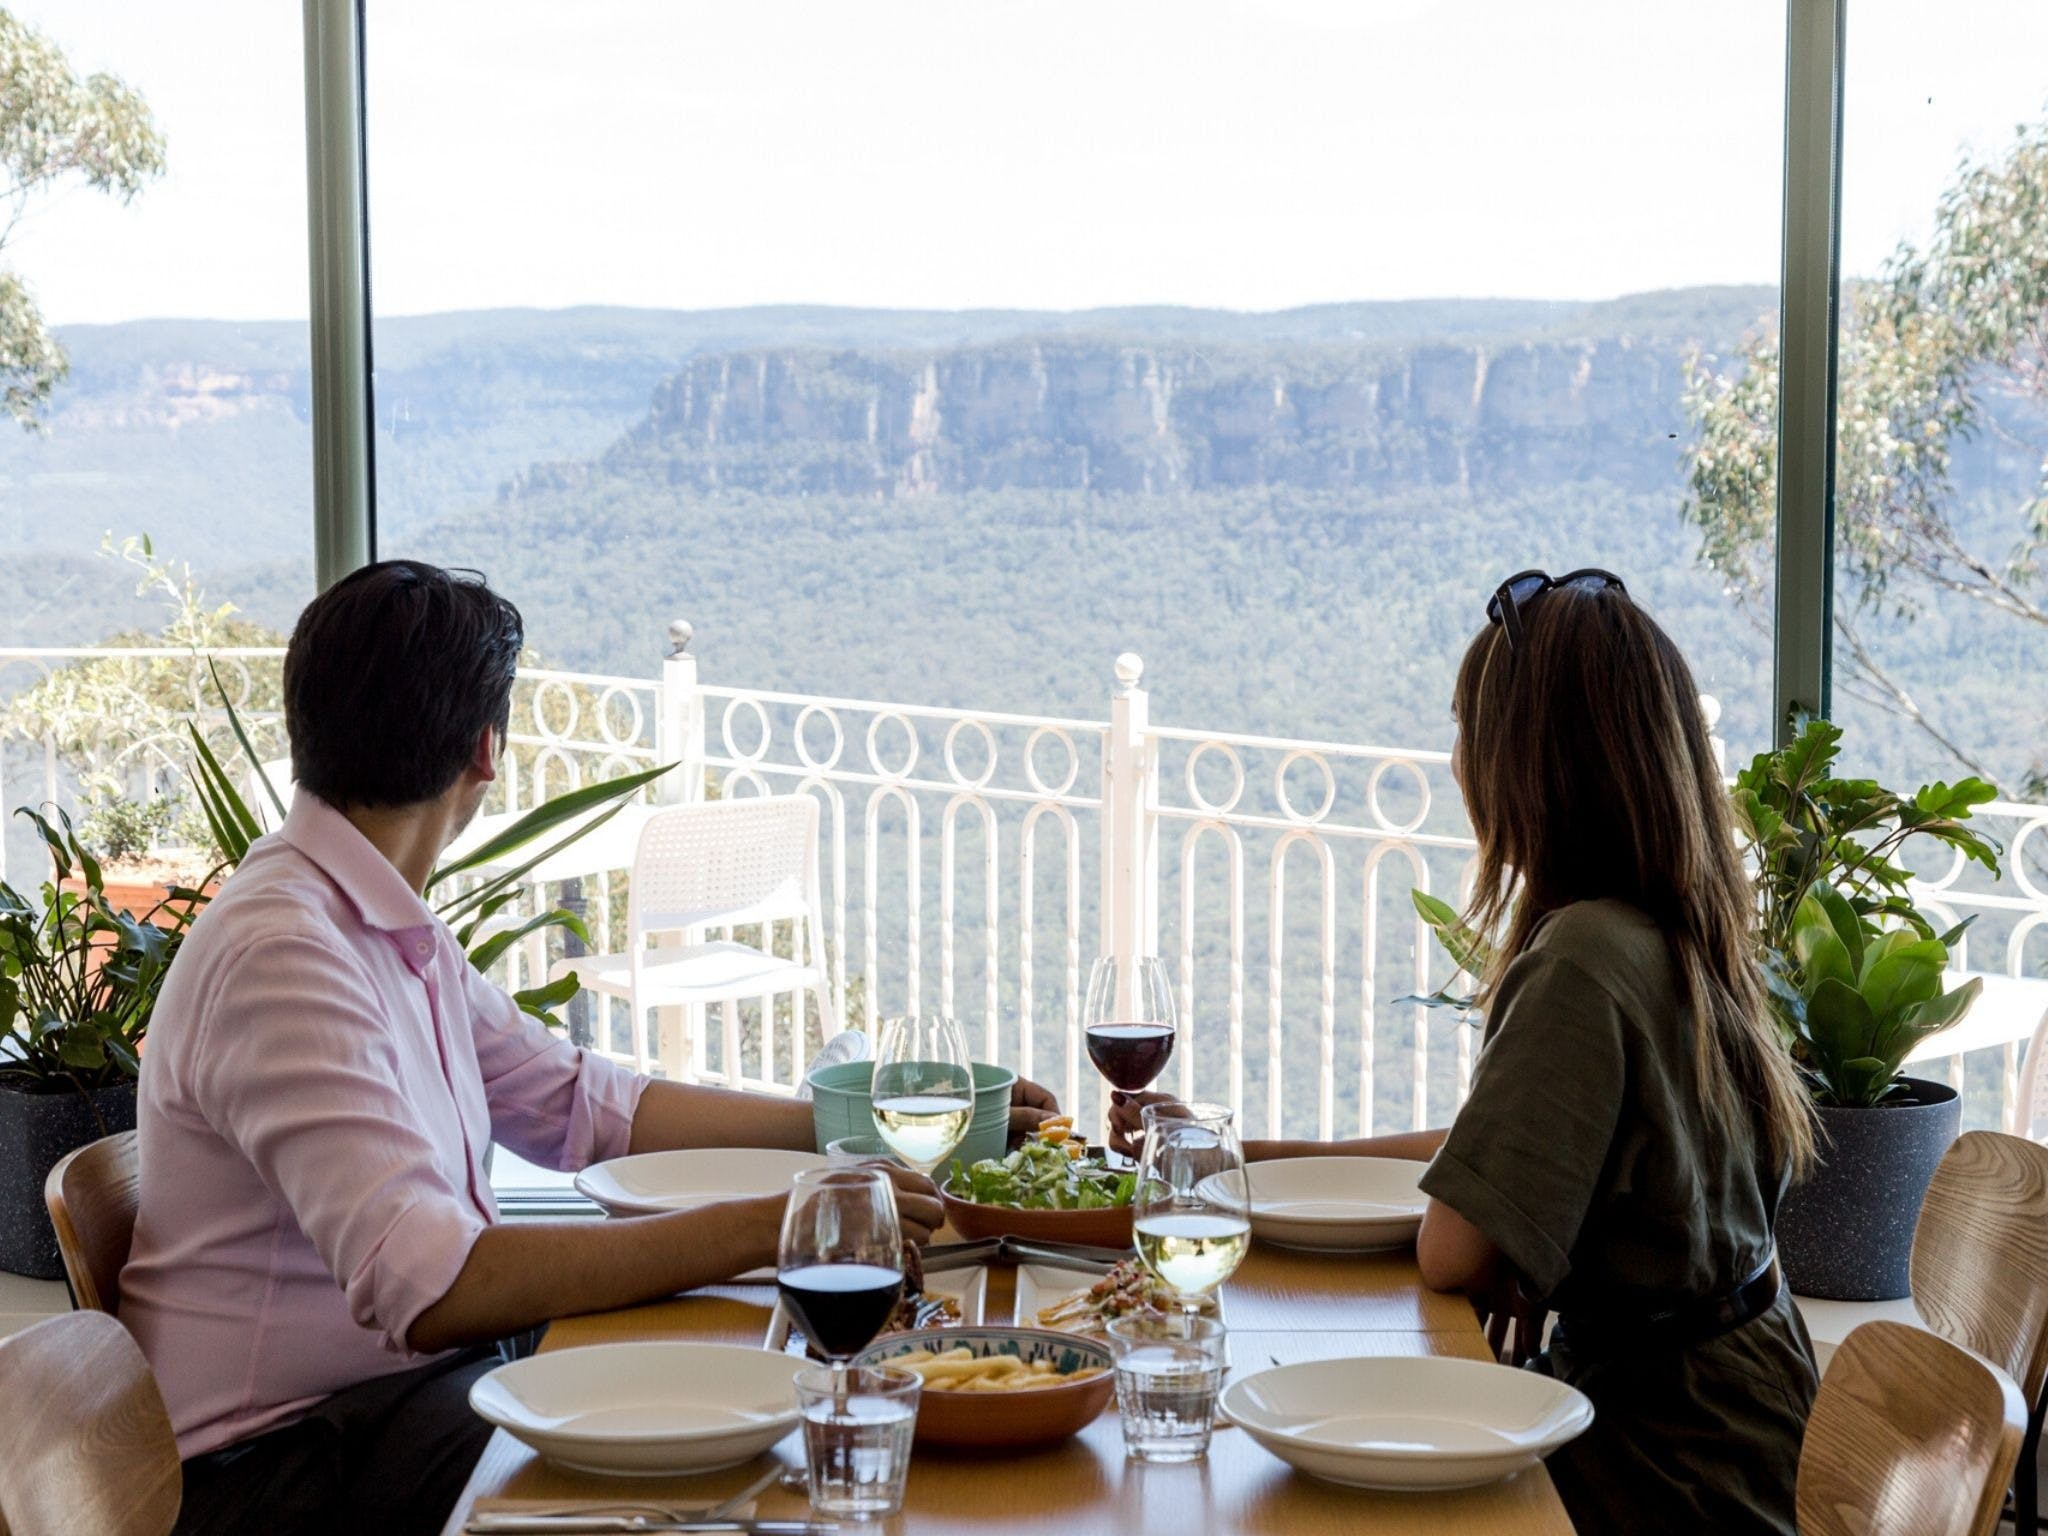 Christmas Day Lunch at The Lookout Echo Point - Wagga Wagga Accommodation